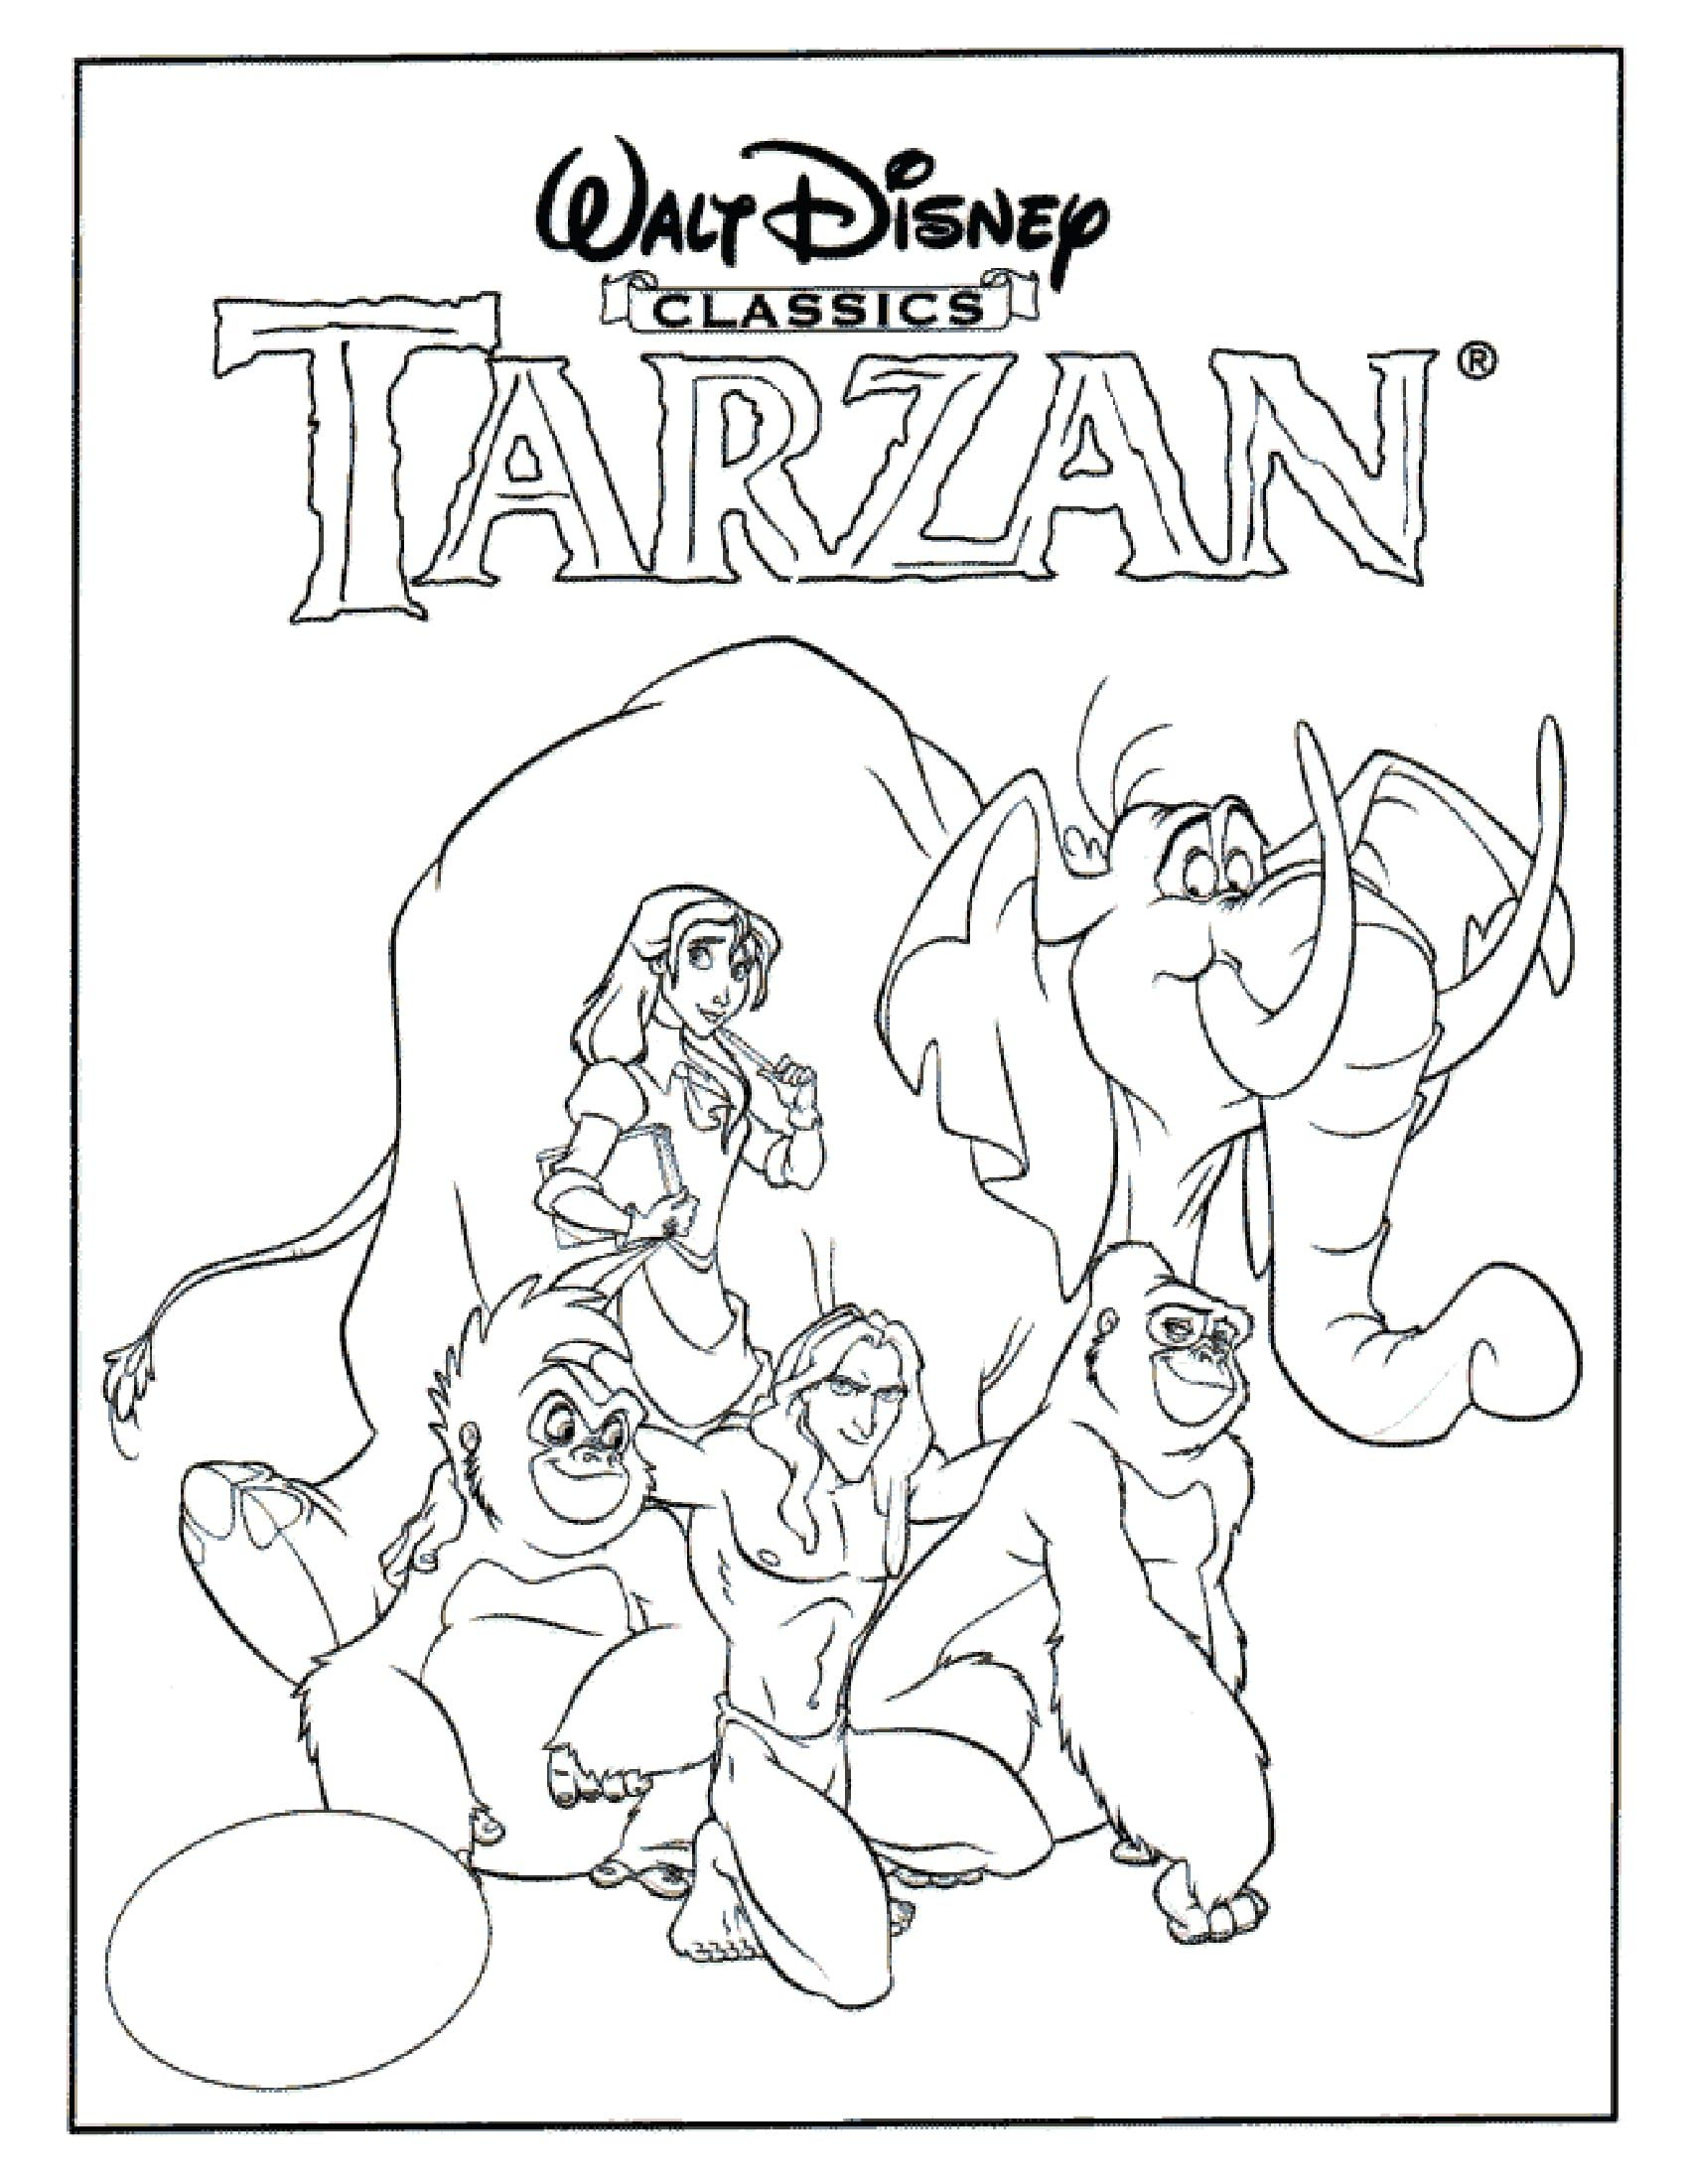 Tarzan | Disney Coloring Pages: Movie Covers | Pinterest